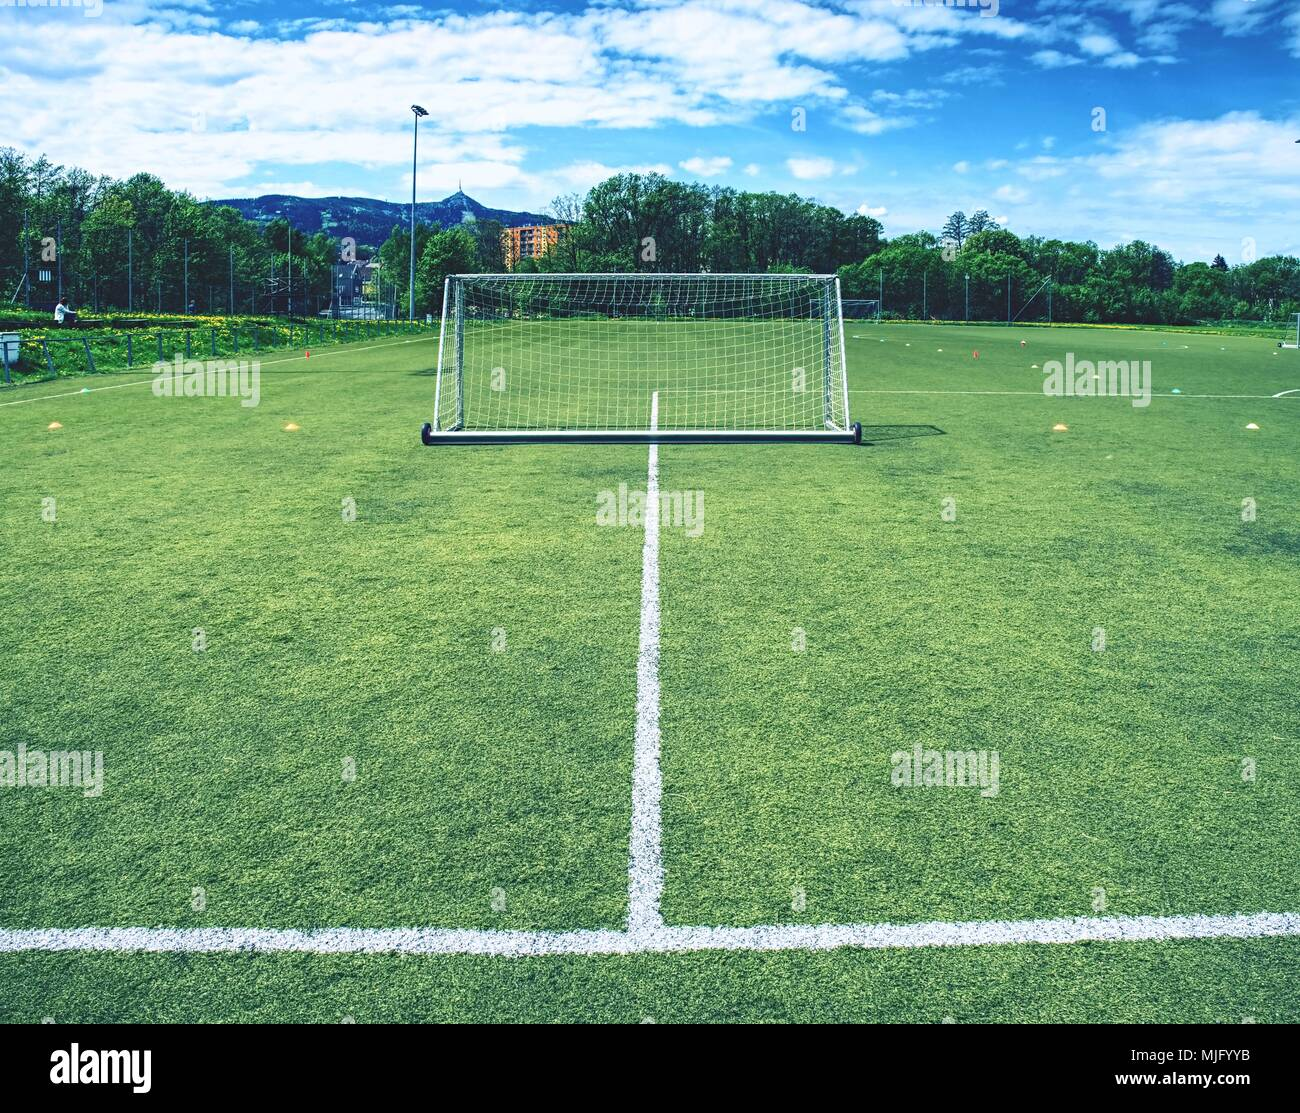 a5c226bbd On football soccer field. Behind goal of soccer field. Soccer football net  background over